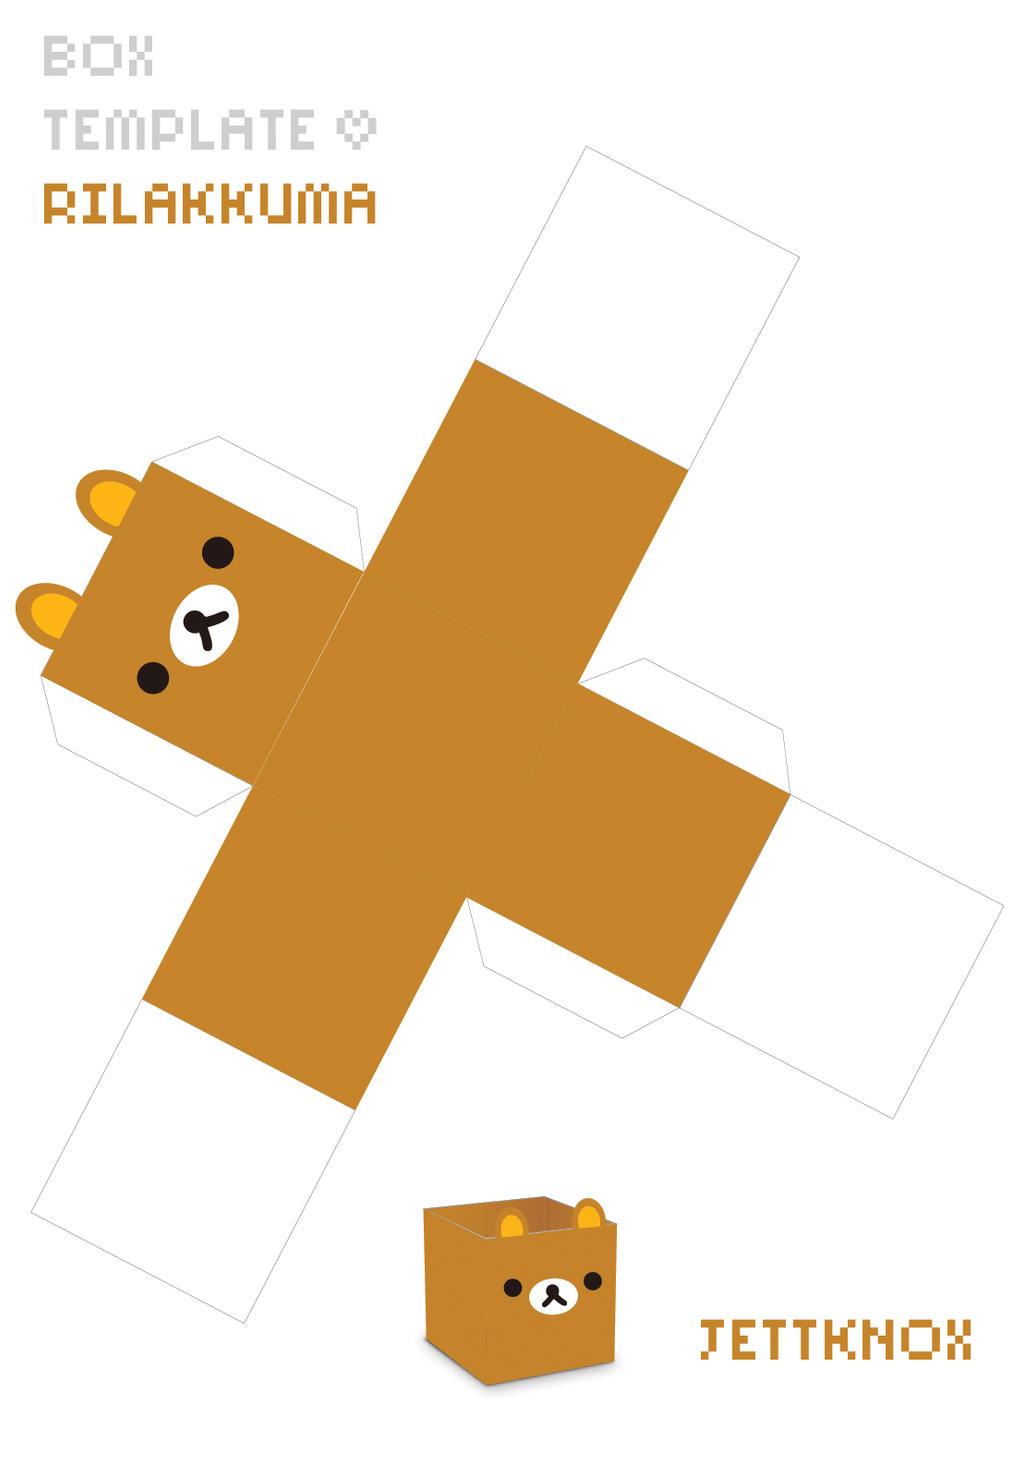 Box template rilakkuma by jettknox on deviantart for Cute papercraft templates